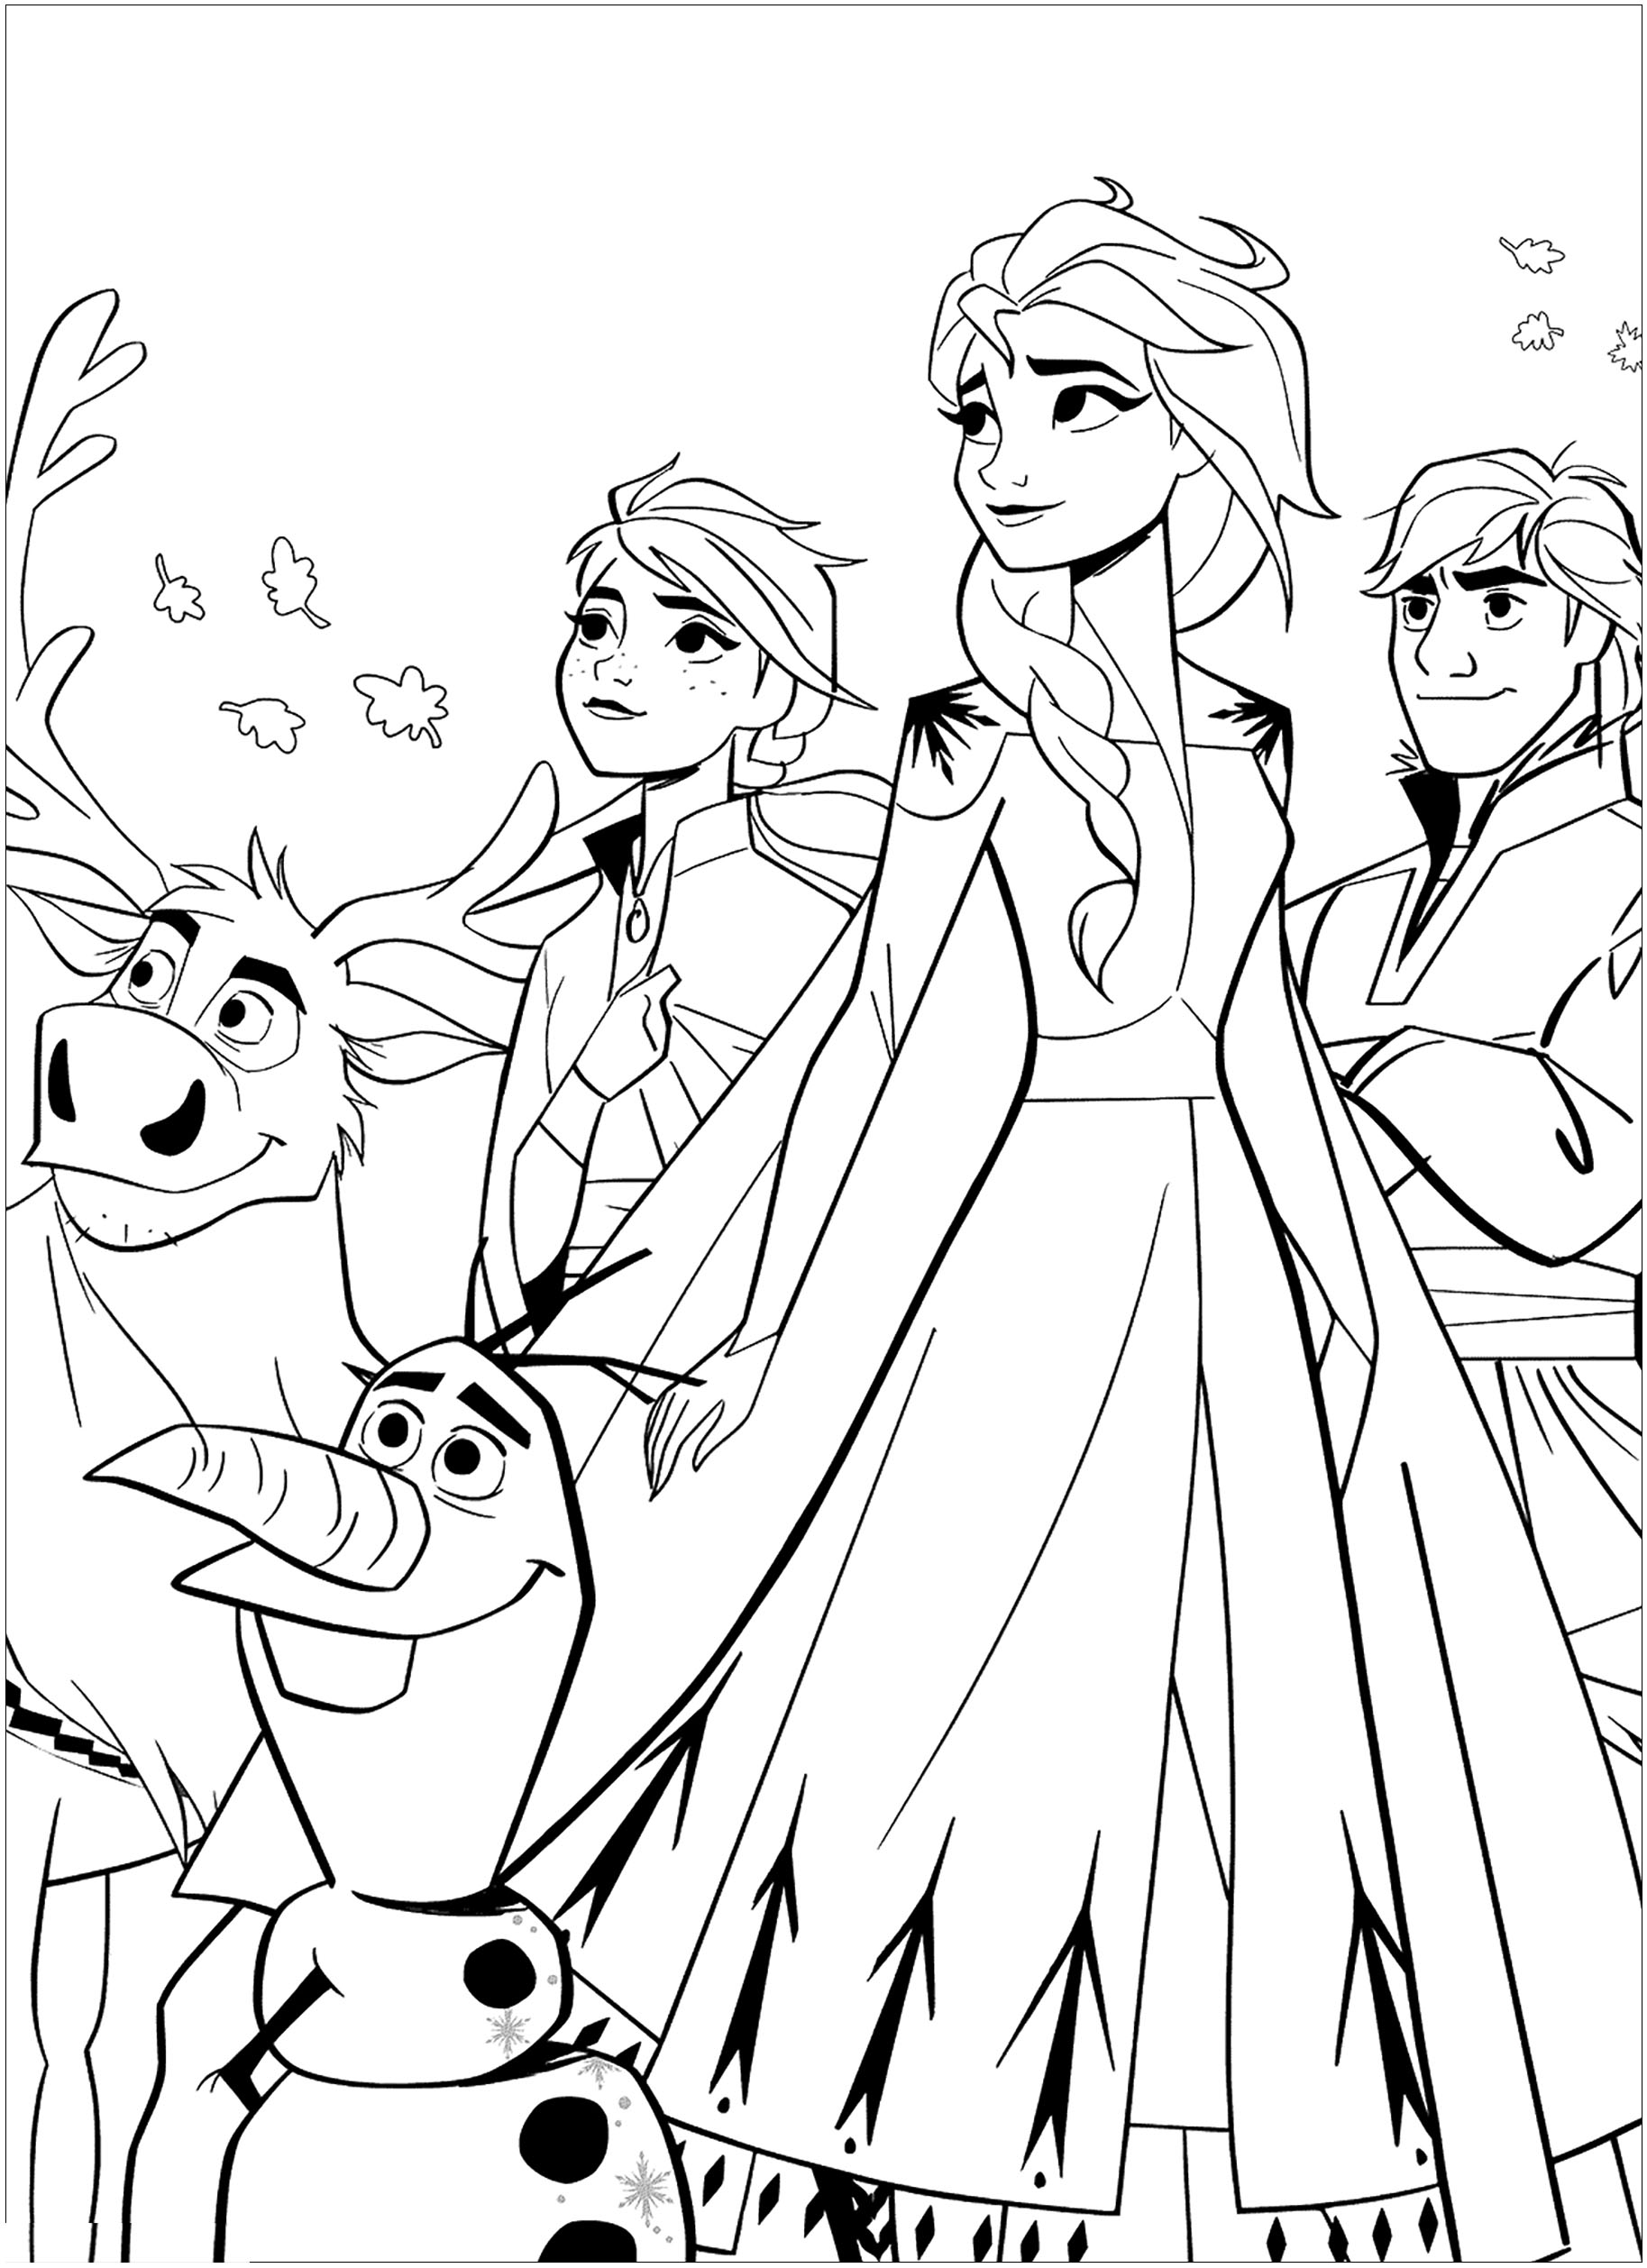 frozen colouring pages free printable frozen coloring pages for kids best colouring frozen pages 1 1